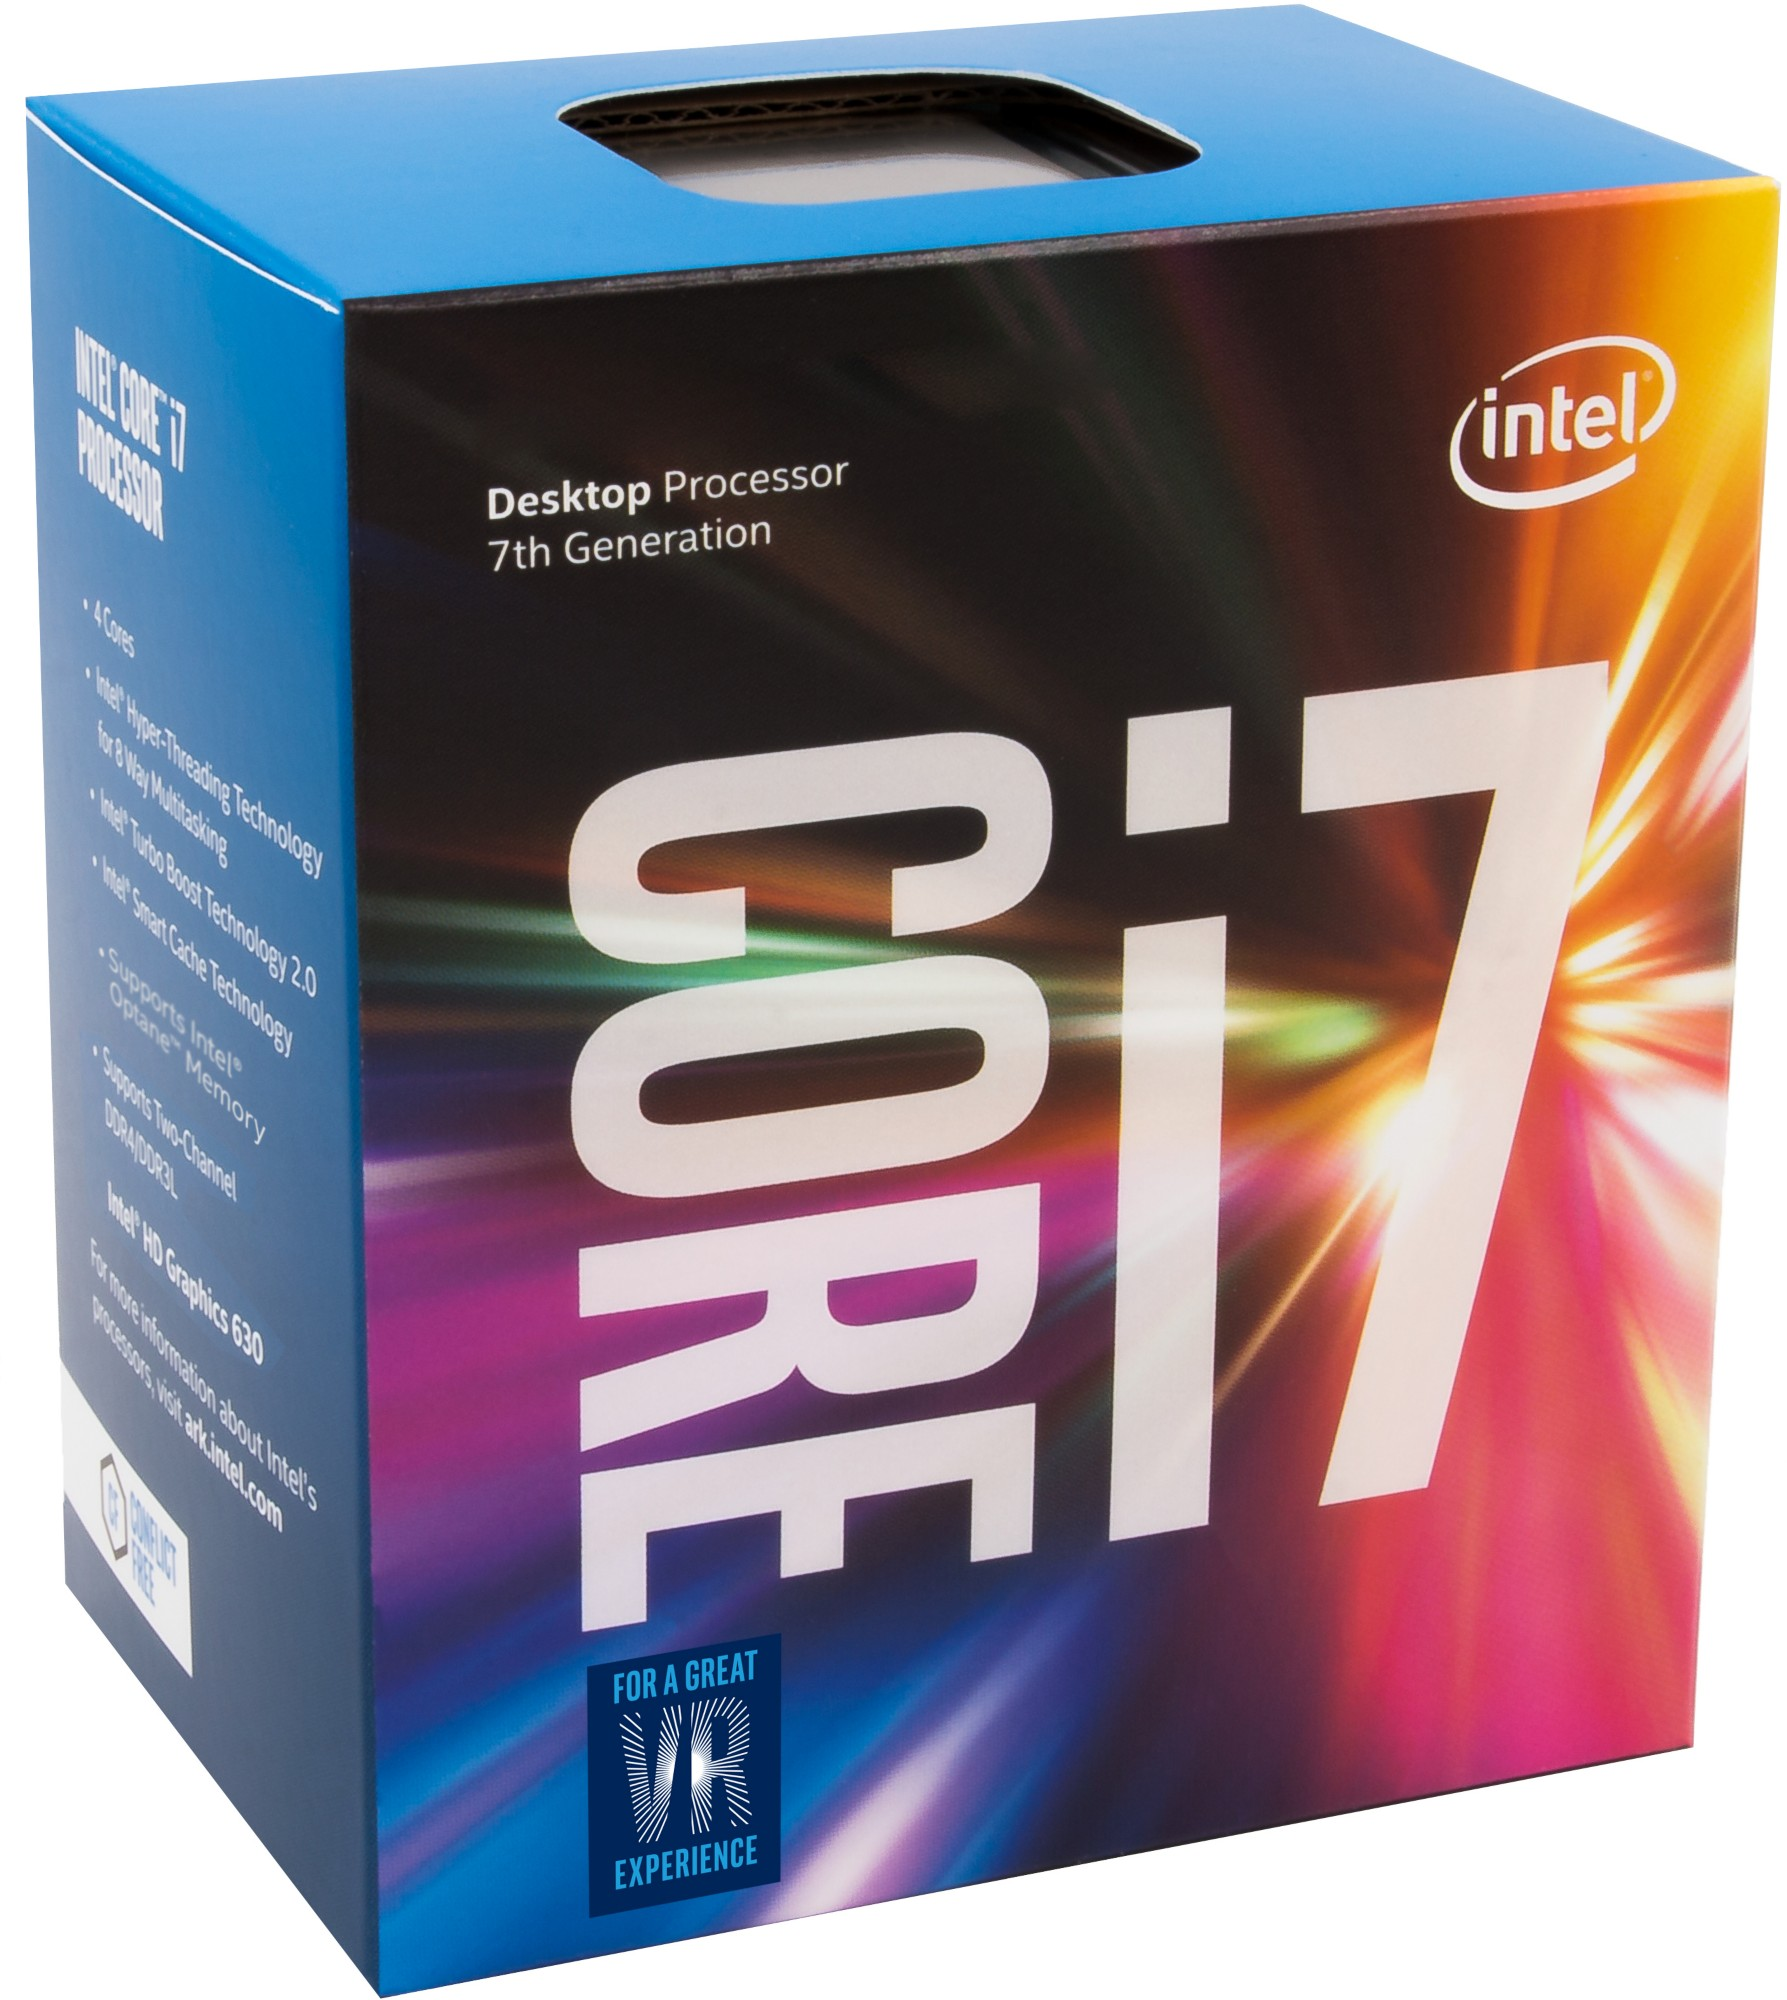 Intel Core i7-7700K 4.2GHz 8MB Smart Cache Box processor